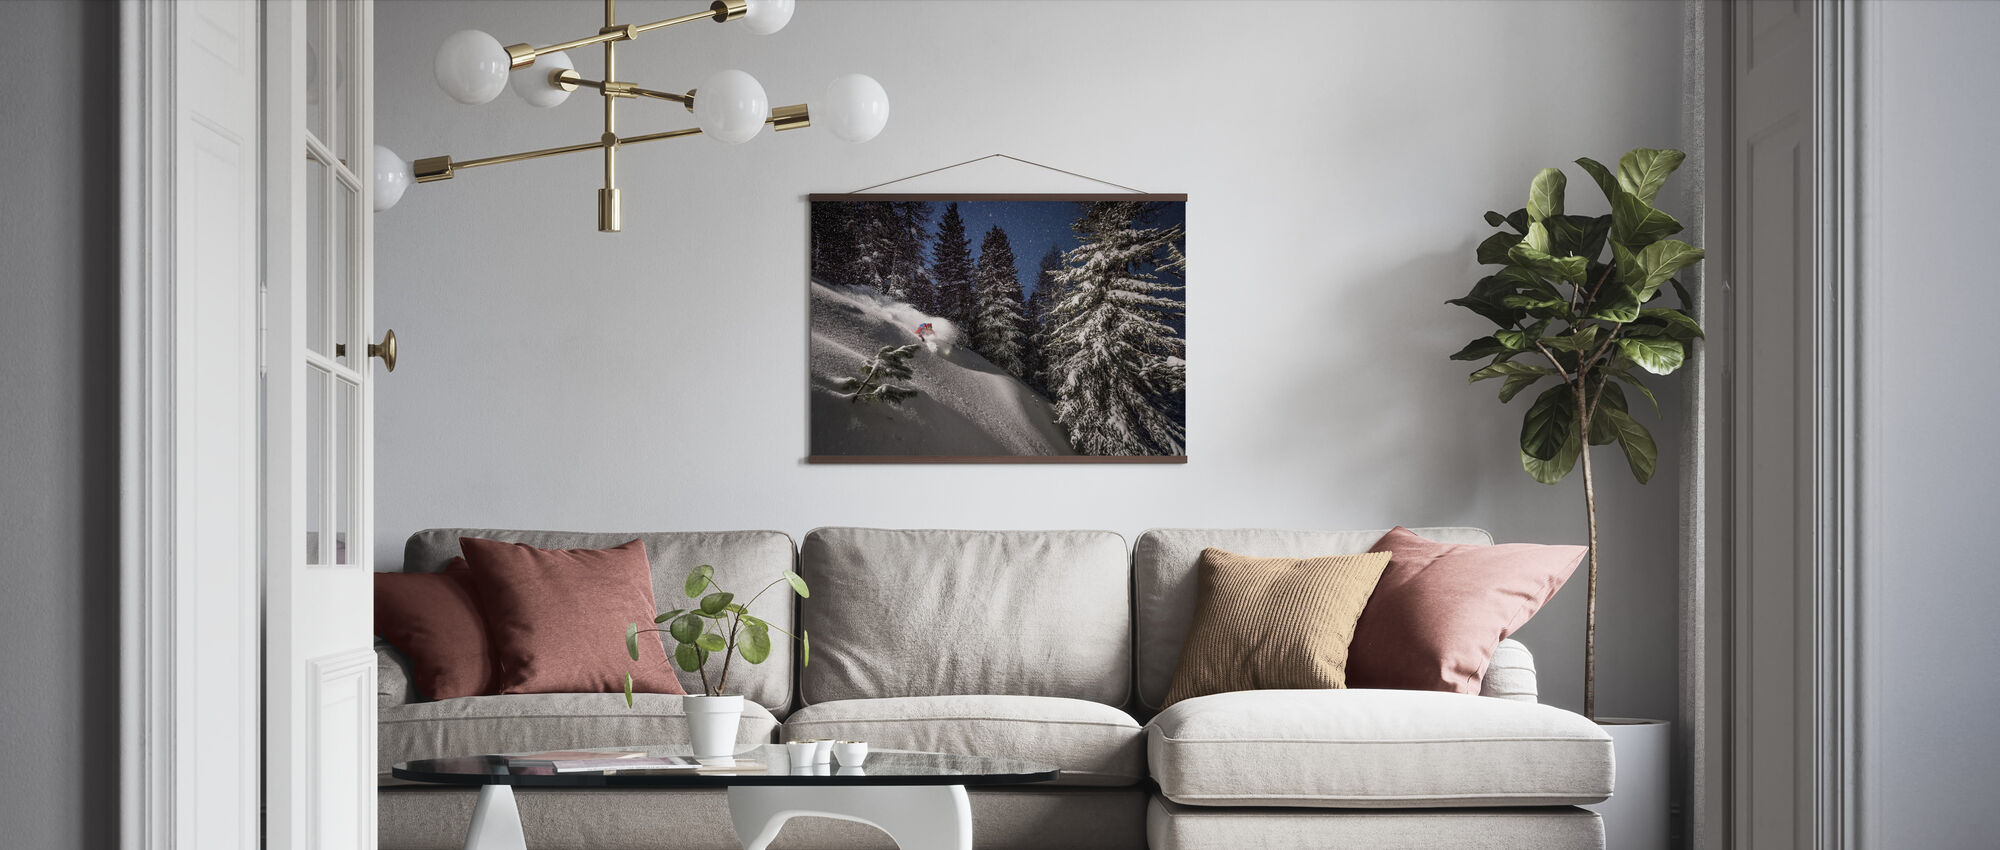 Night Powder Turns with Adrien Coirier - Poster - Living Room